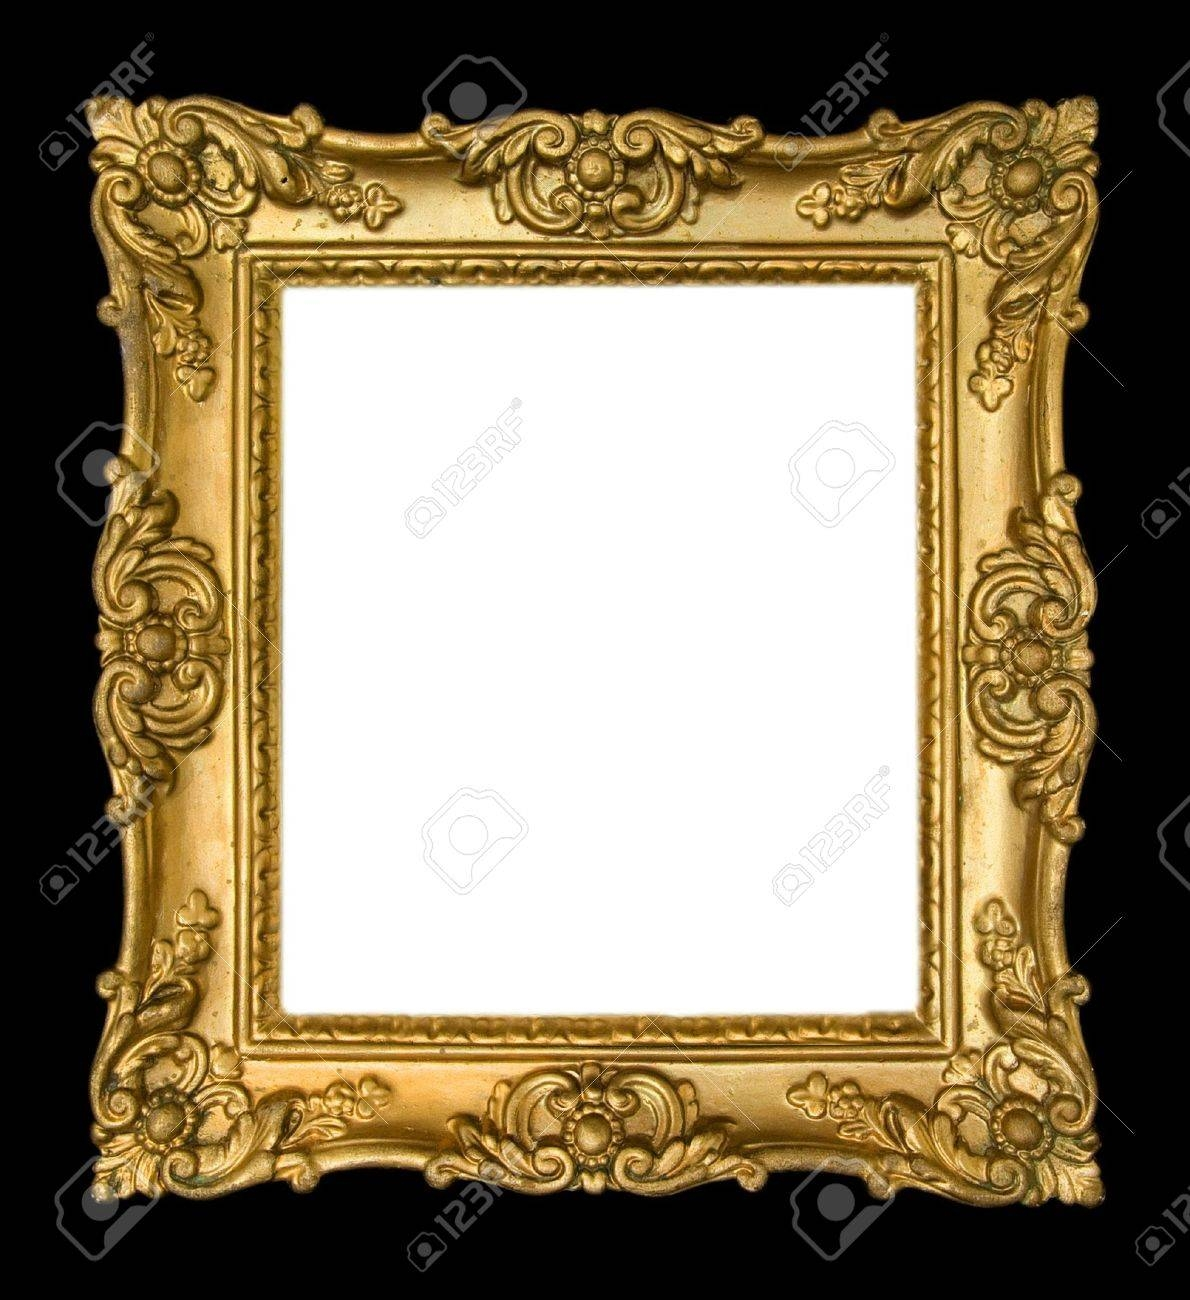 Mirror Cover Stock Photos & Pictures. Royalty Free Mirror Cover regarding Ornate Vintage Mirrors (Image 5 of 15)